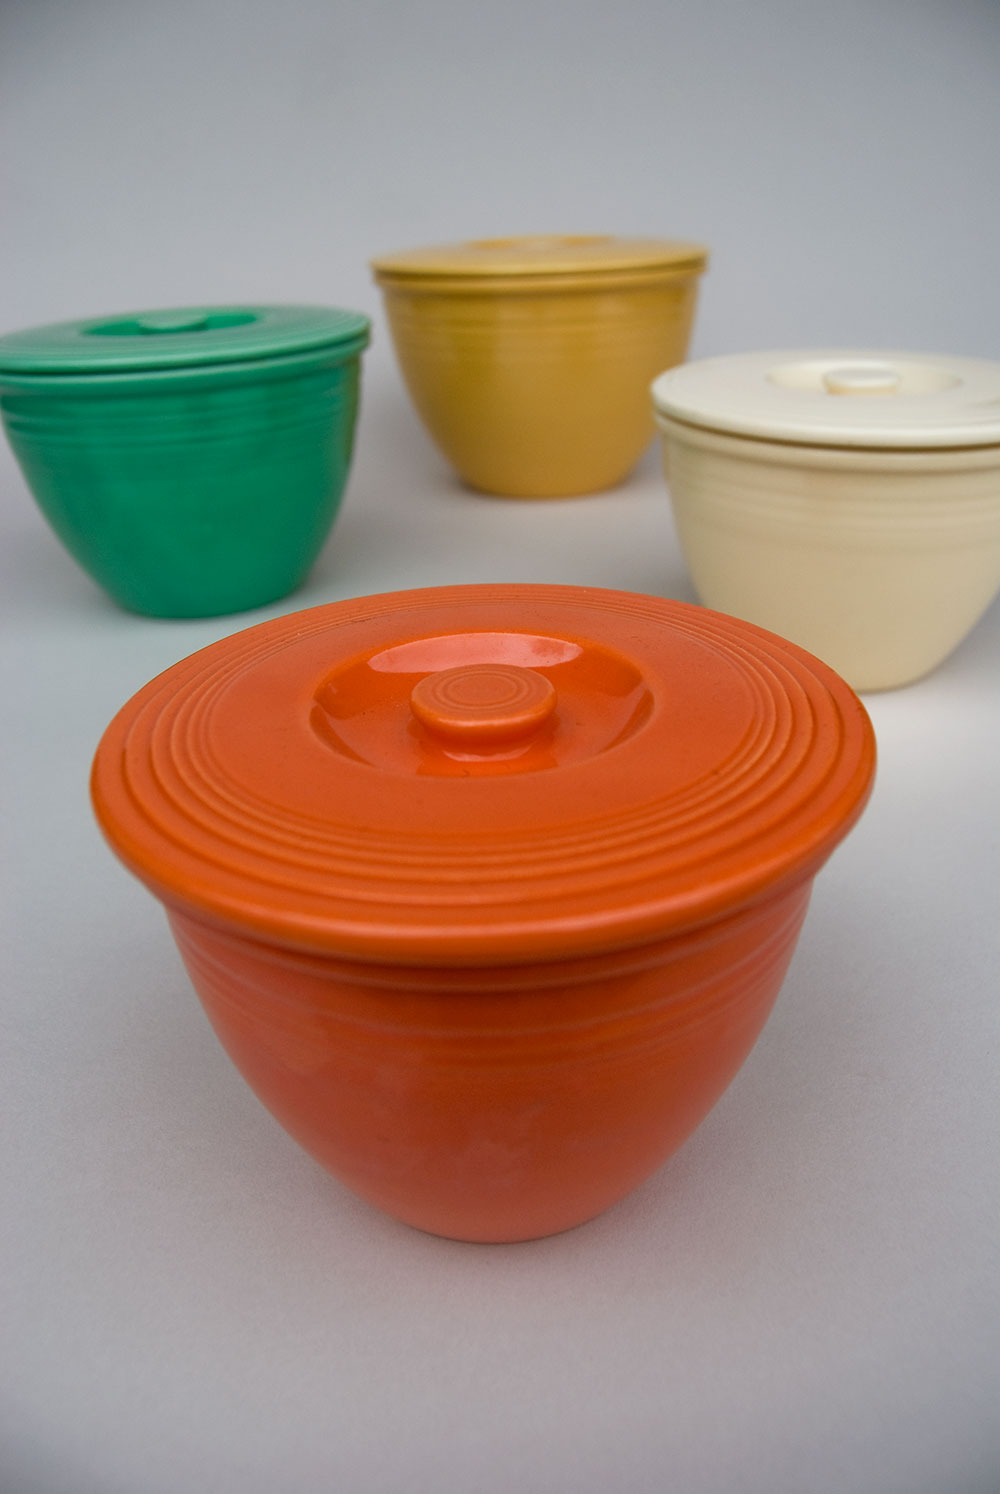 Awesome Collections Of Fiestaware For Dinnerware Ideas: Lovely Fiestaware Nesting Bowl Lids Fiesta Pottery Rare For Serveware Ideas